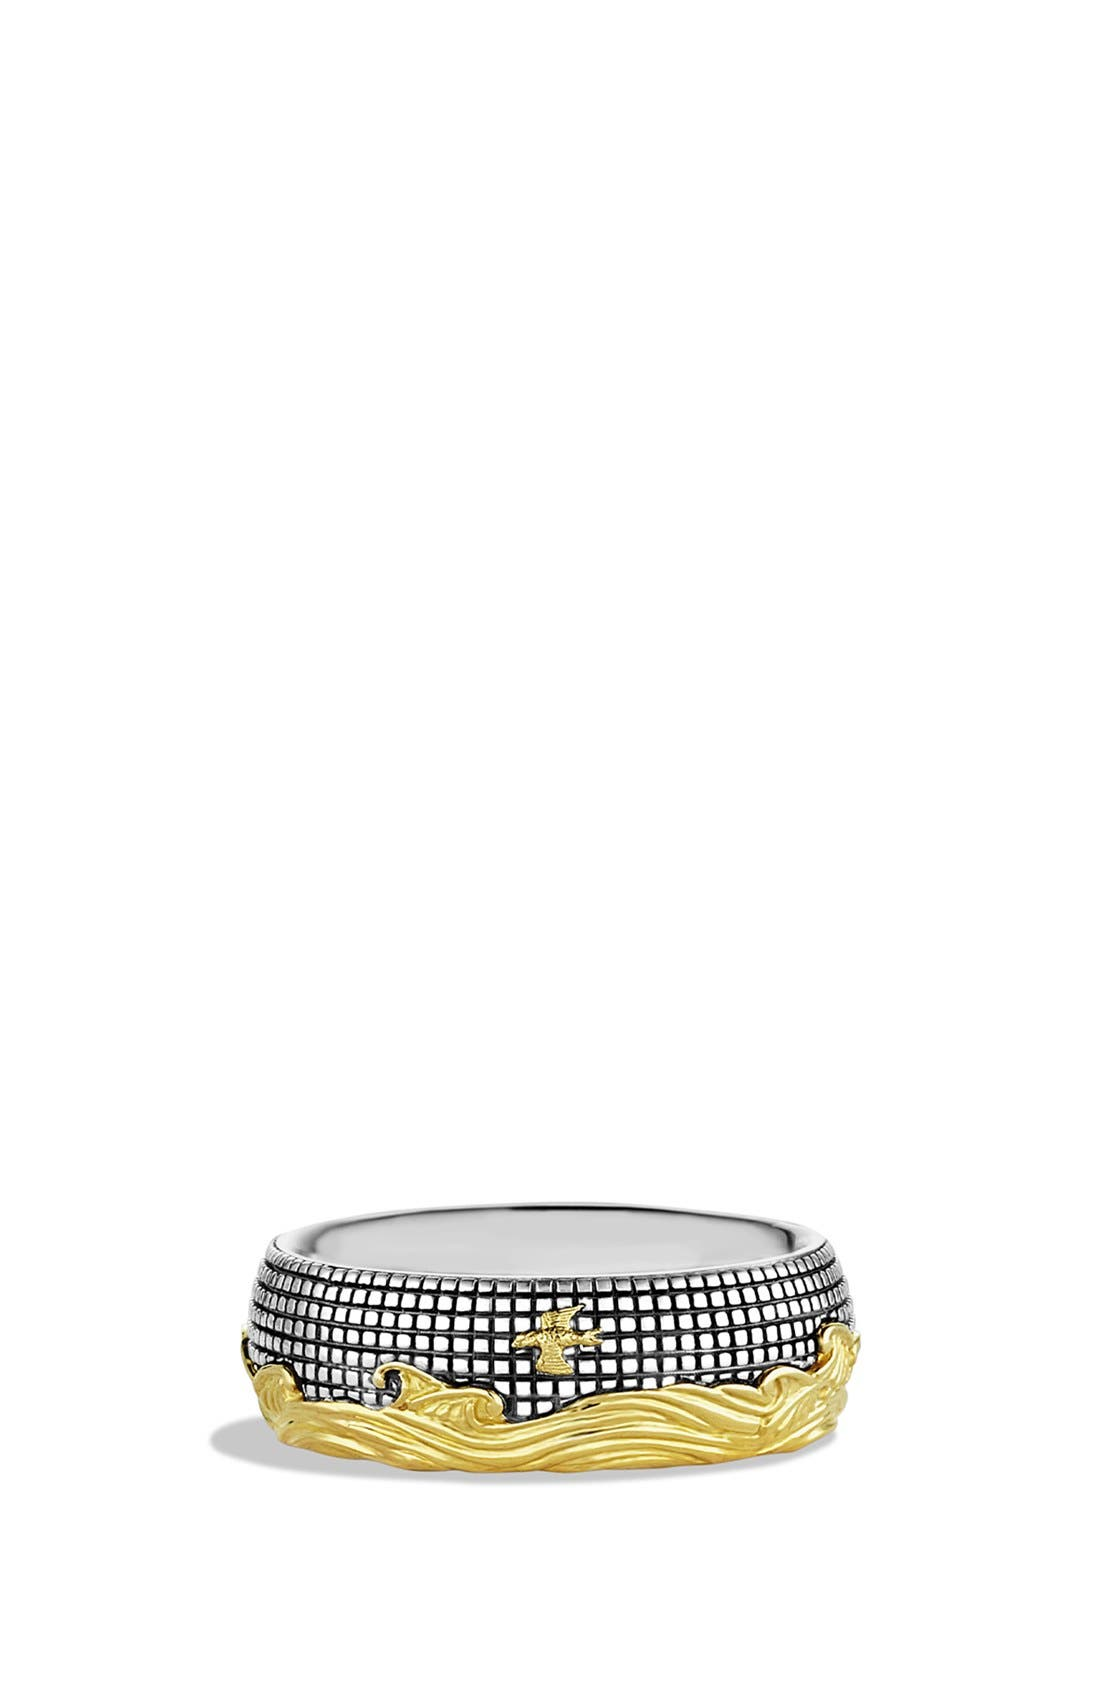 Alternate Image 1 Selected - David Yurman 'Waves' Band Ring with Gold